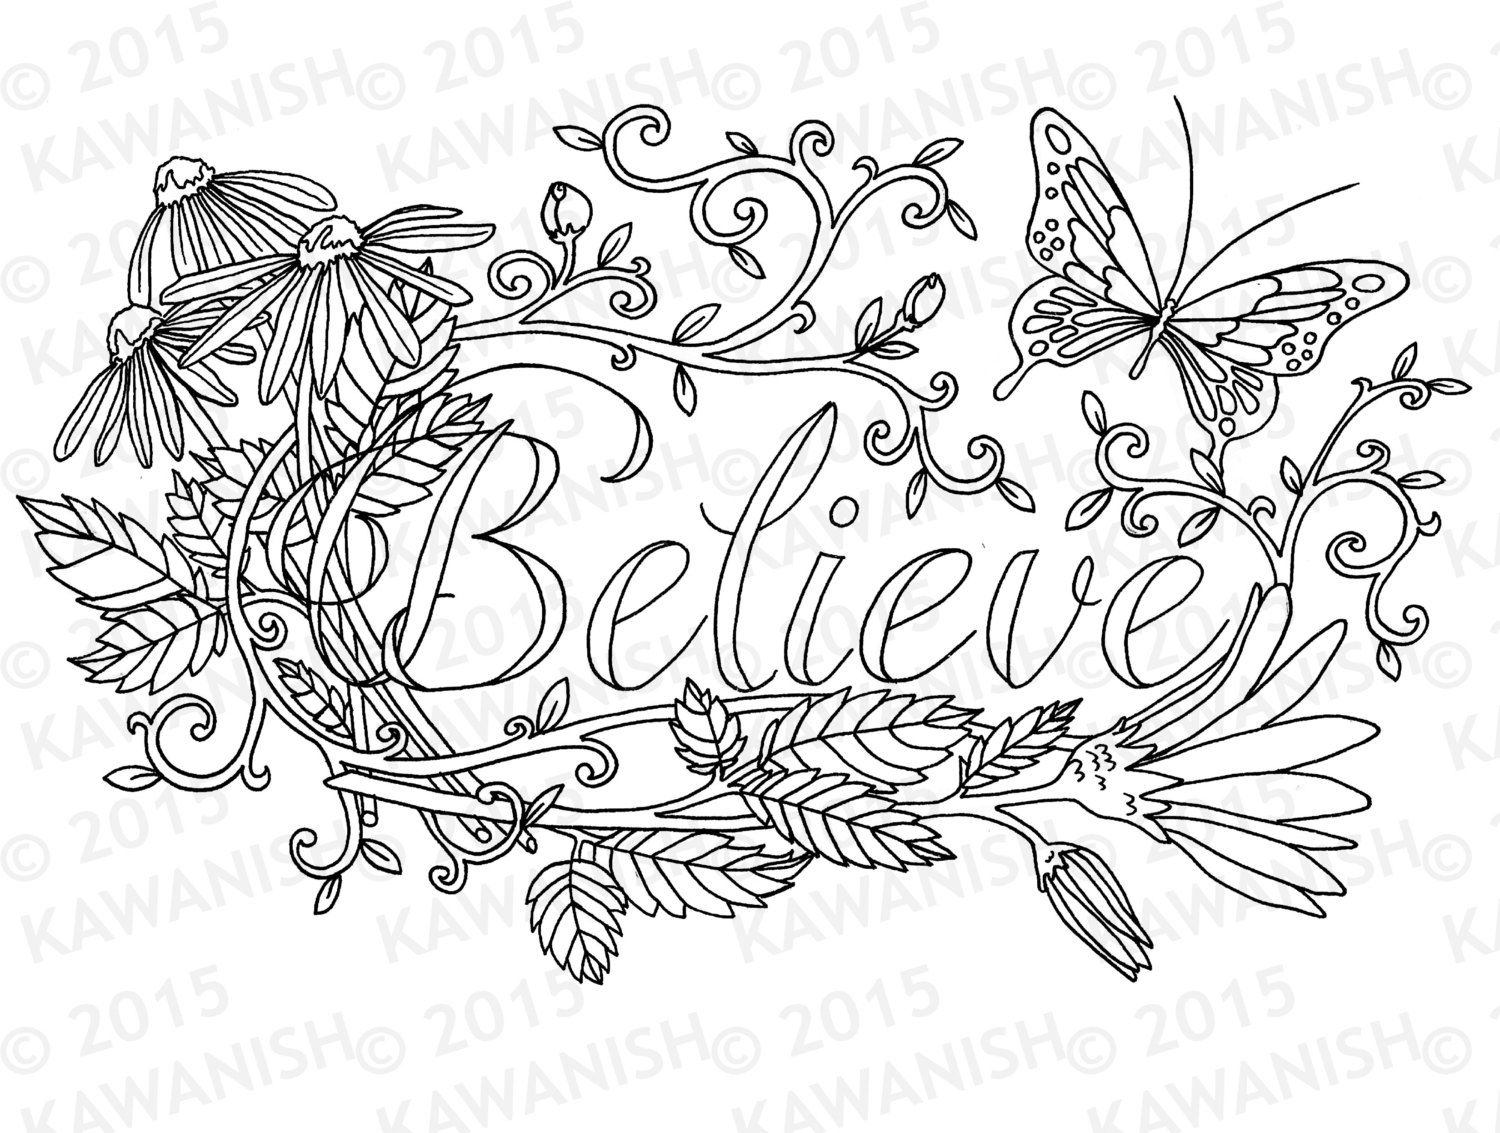 believe flower inspirational adult coloring page gift wall art | art